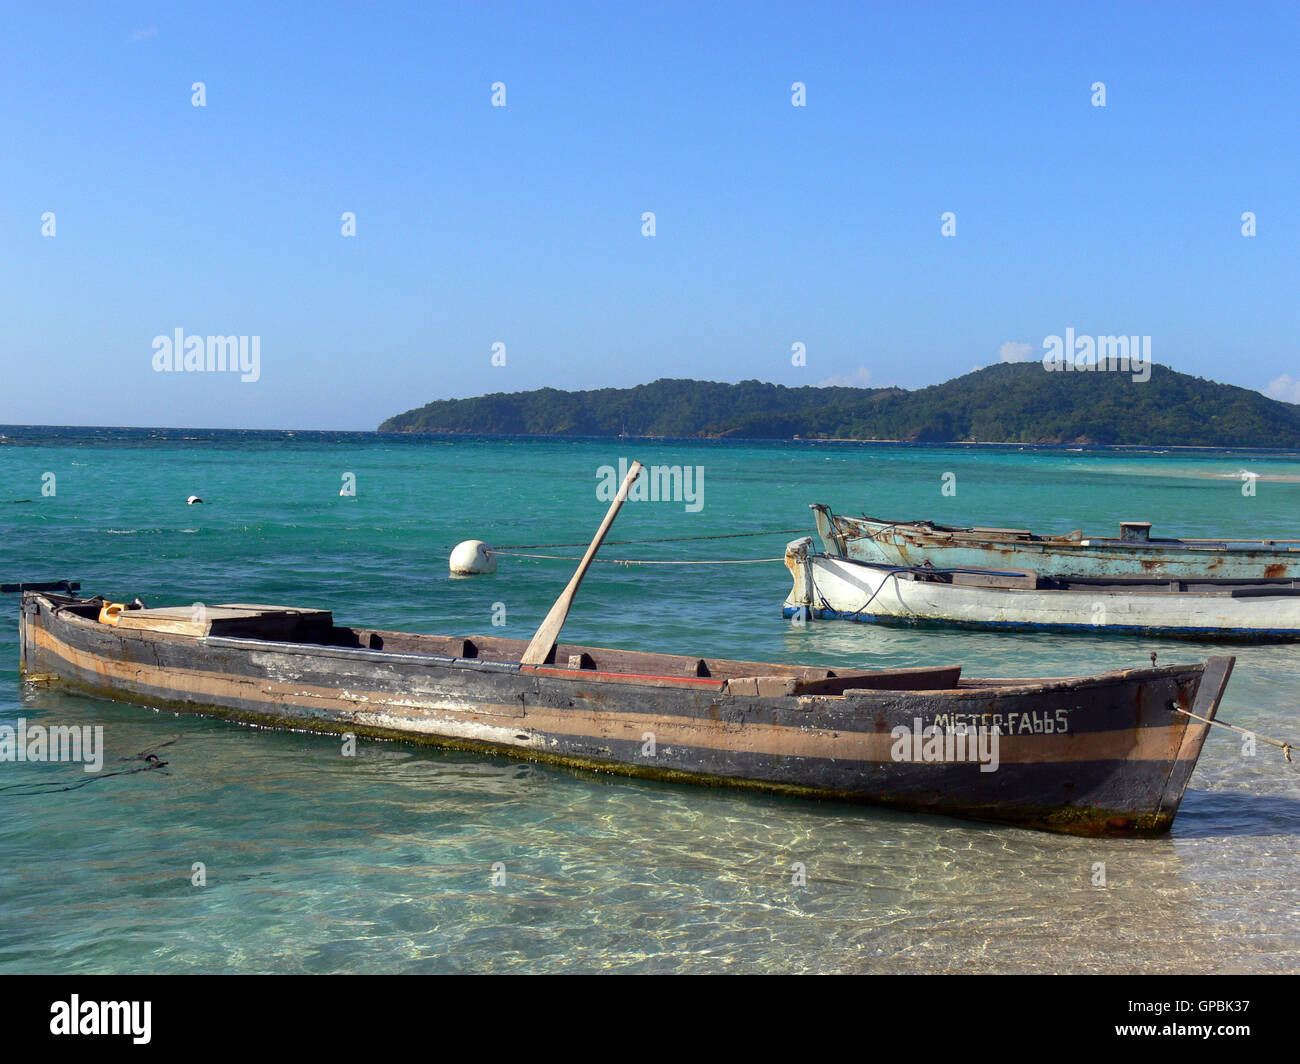 ATLANTIDA/HONDURAS - CIRCA MARCH 2012: View of transparent waters and fishermen boats in Cayo Chachauate, archipelago Stock Photo